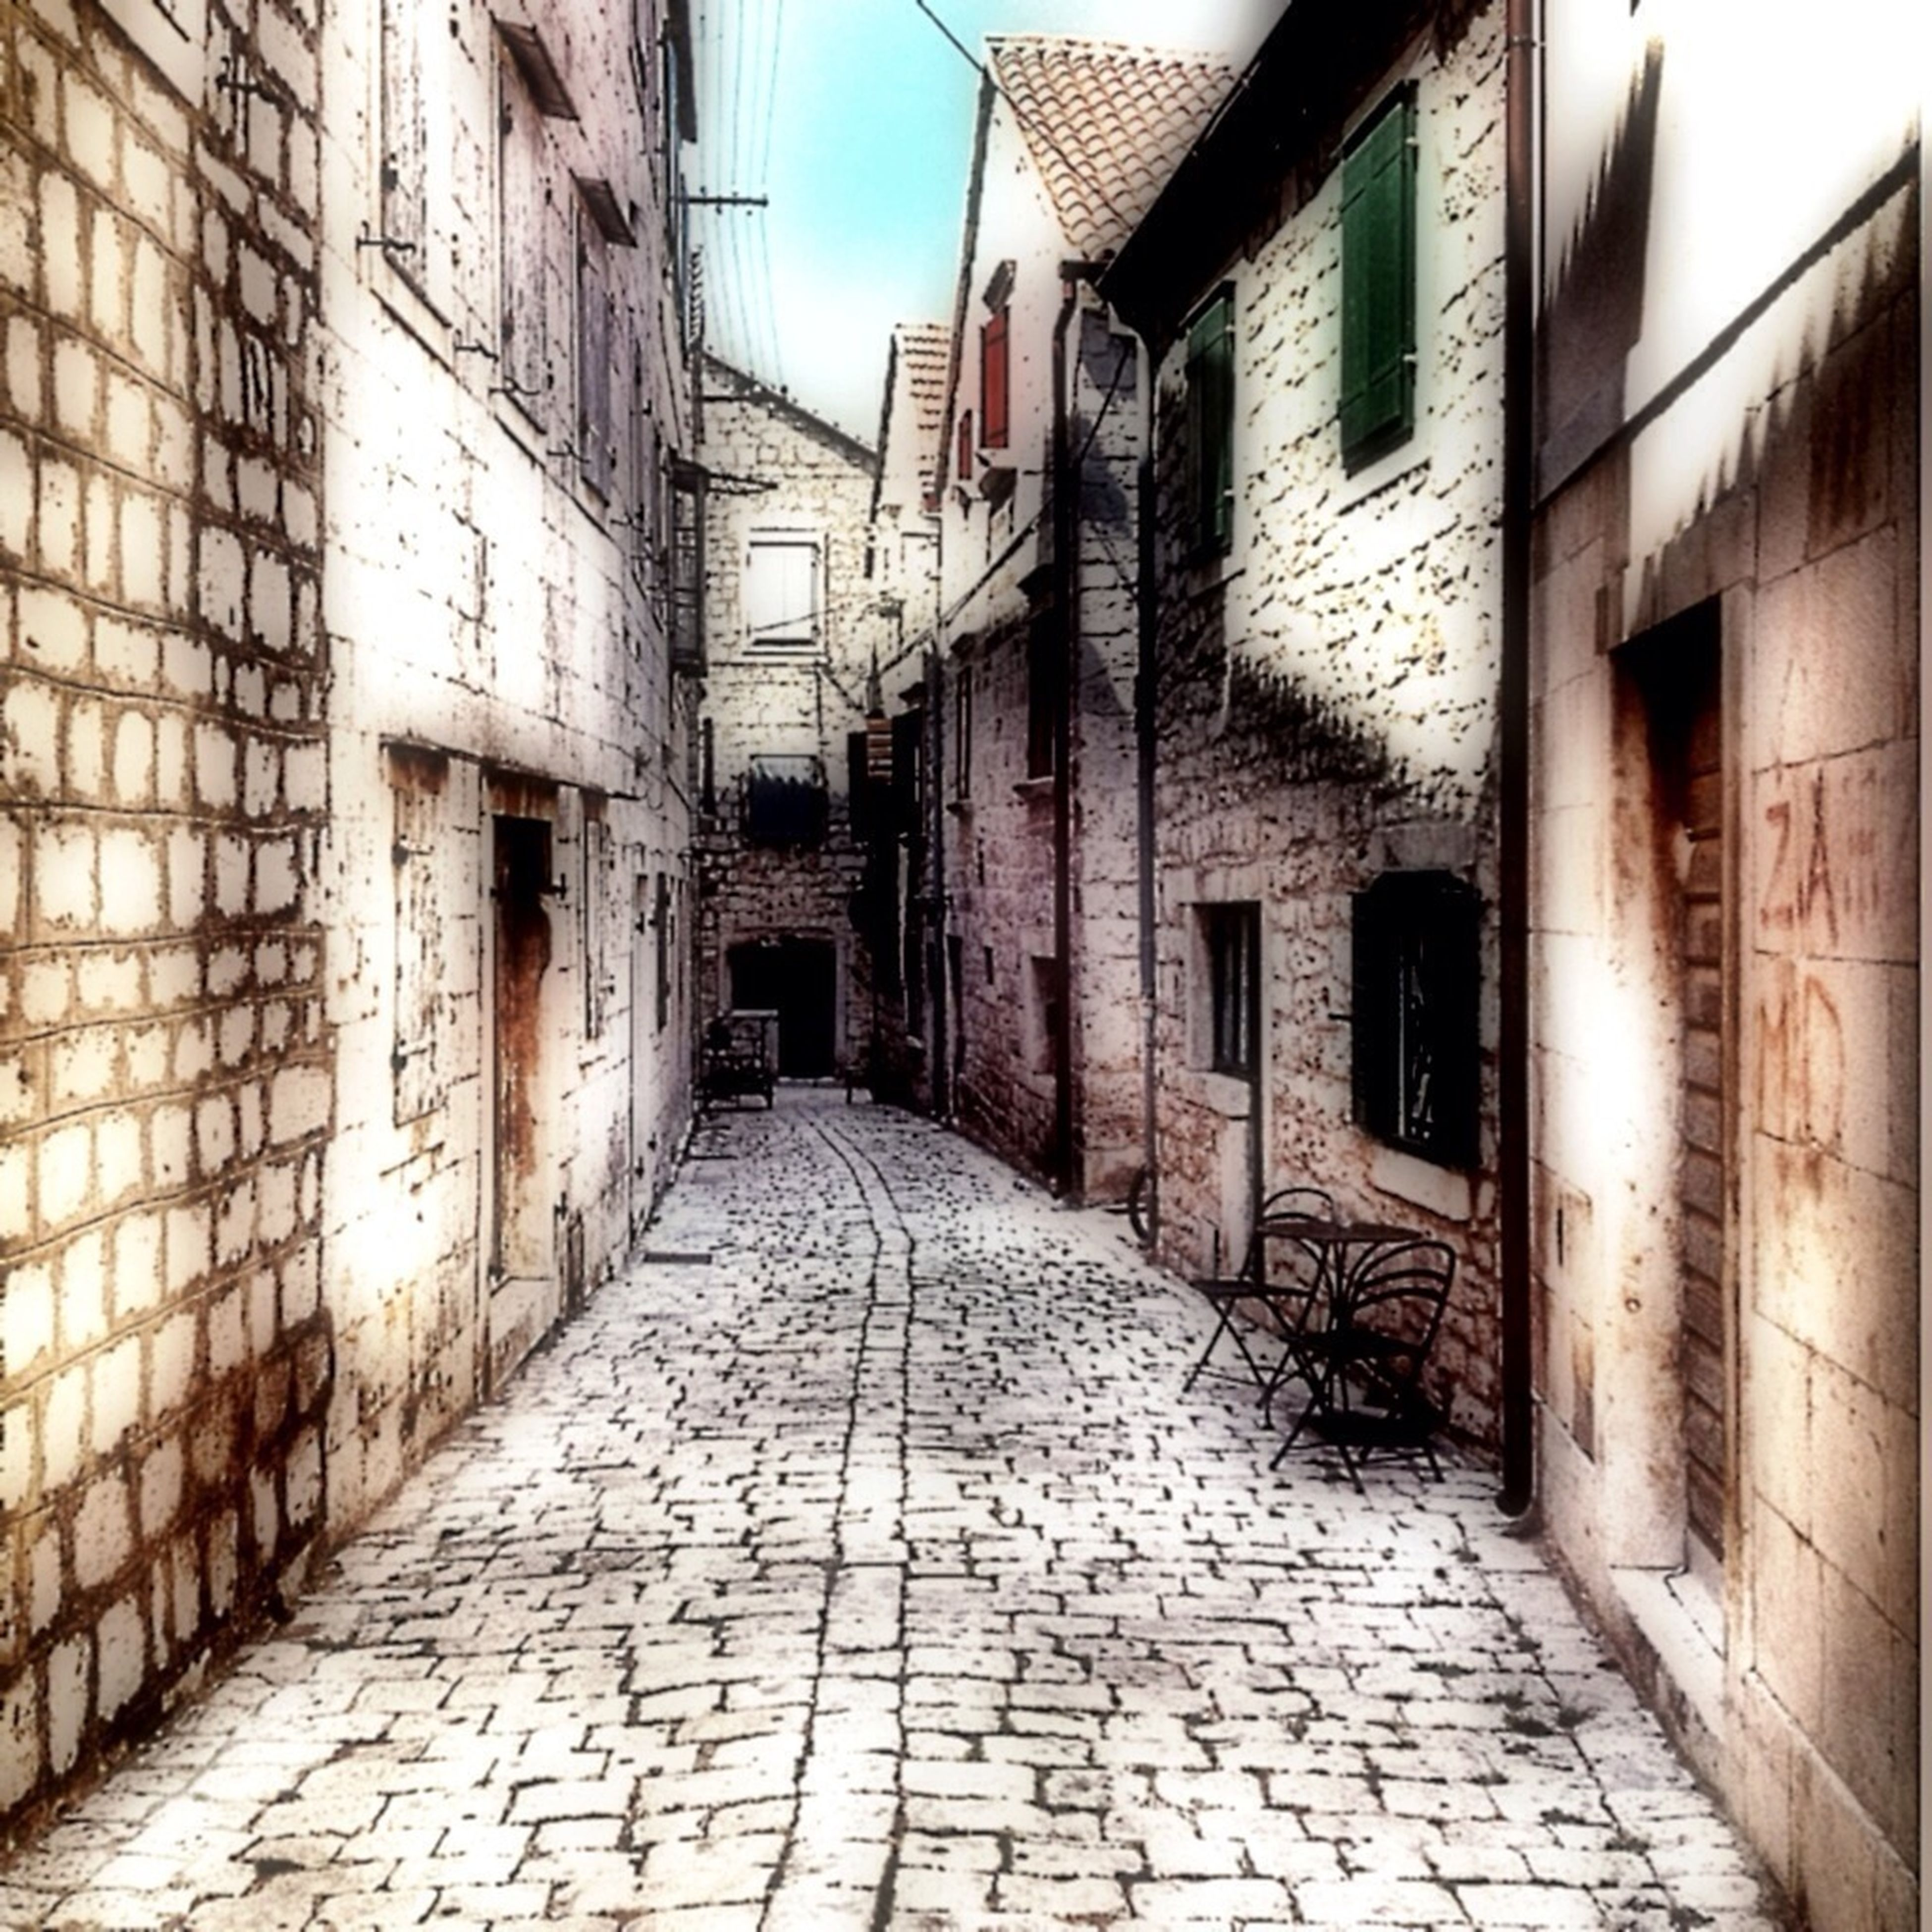 architecture, built structure, building exterior, the way forward, cobblestone, alley, narrow, building, residential structure, walkway, residential building, diminishing perspective, street, footpath, paving stone, pathway, wall - building feature, empty, house, brick wall